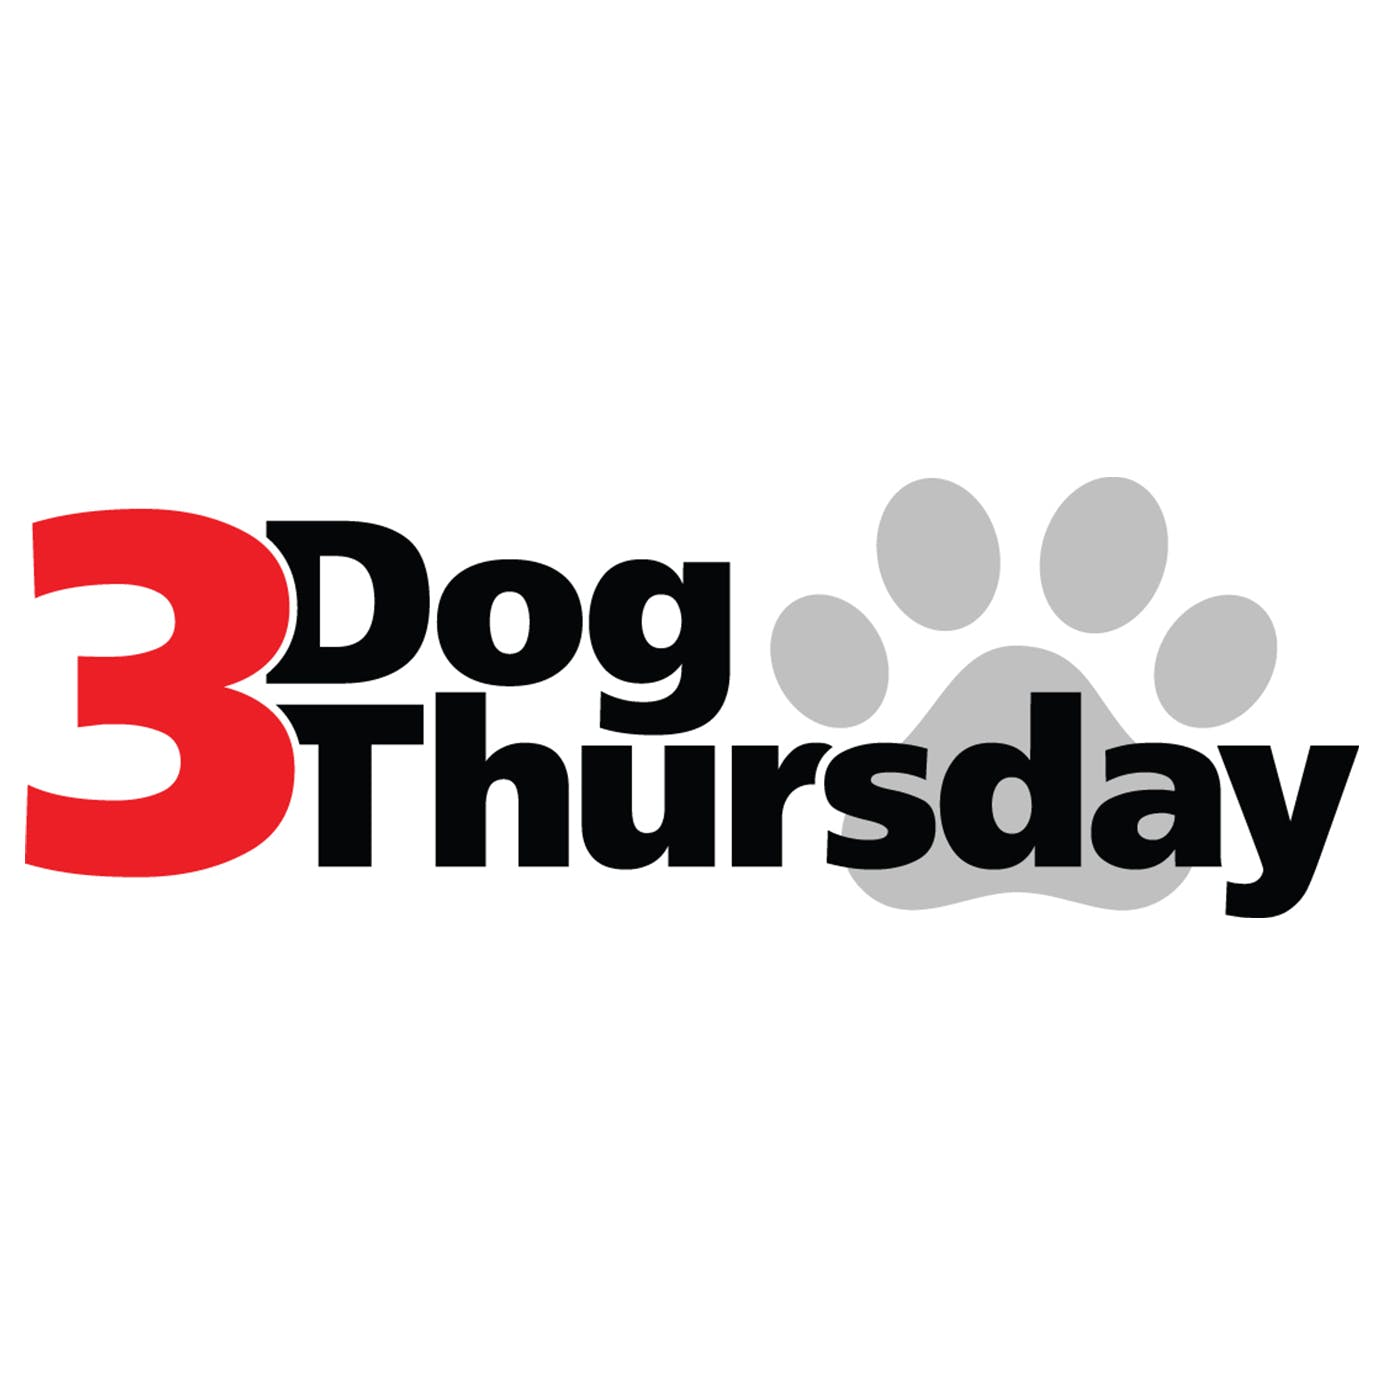 NFL And College Football Picks- LSU Colts Seahawks And More! | Three Dog Thursday (Ep. 82)